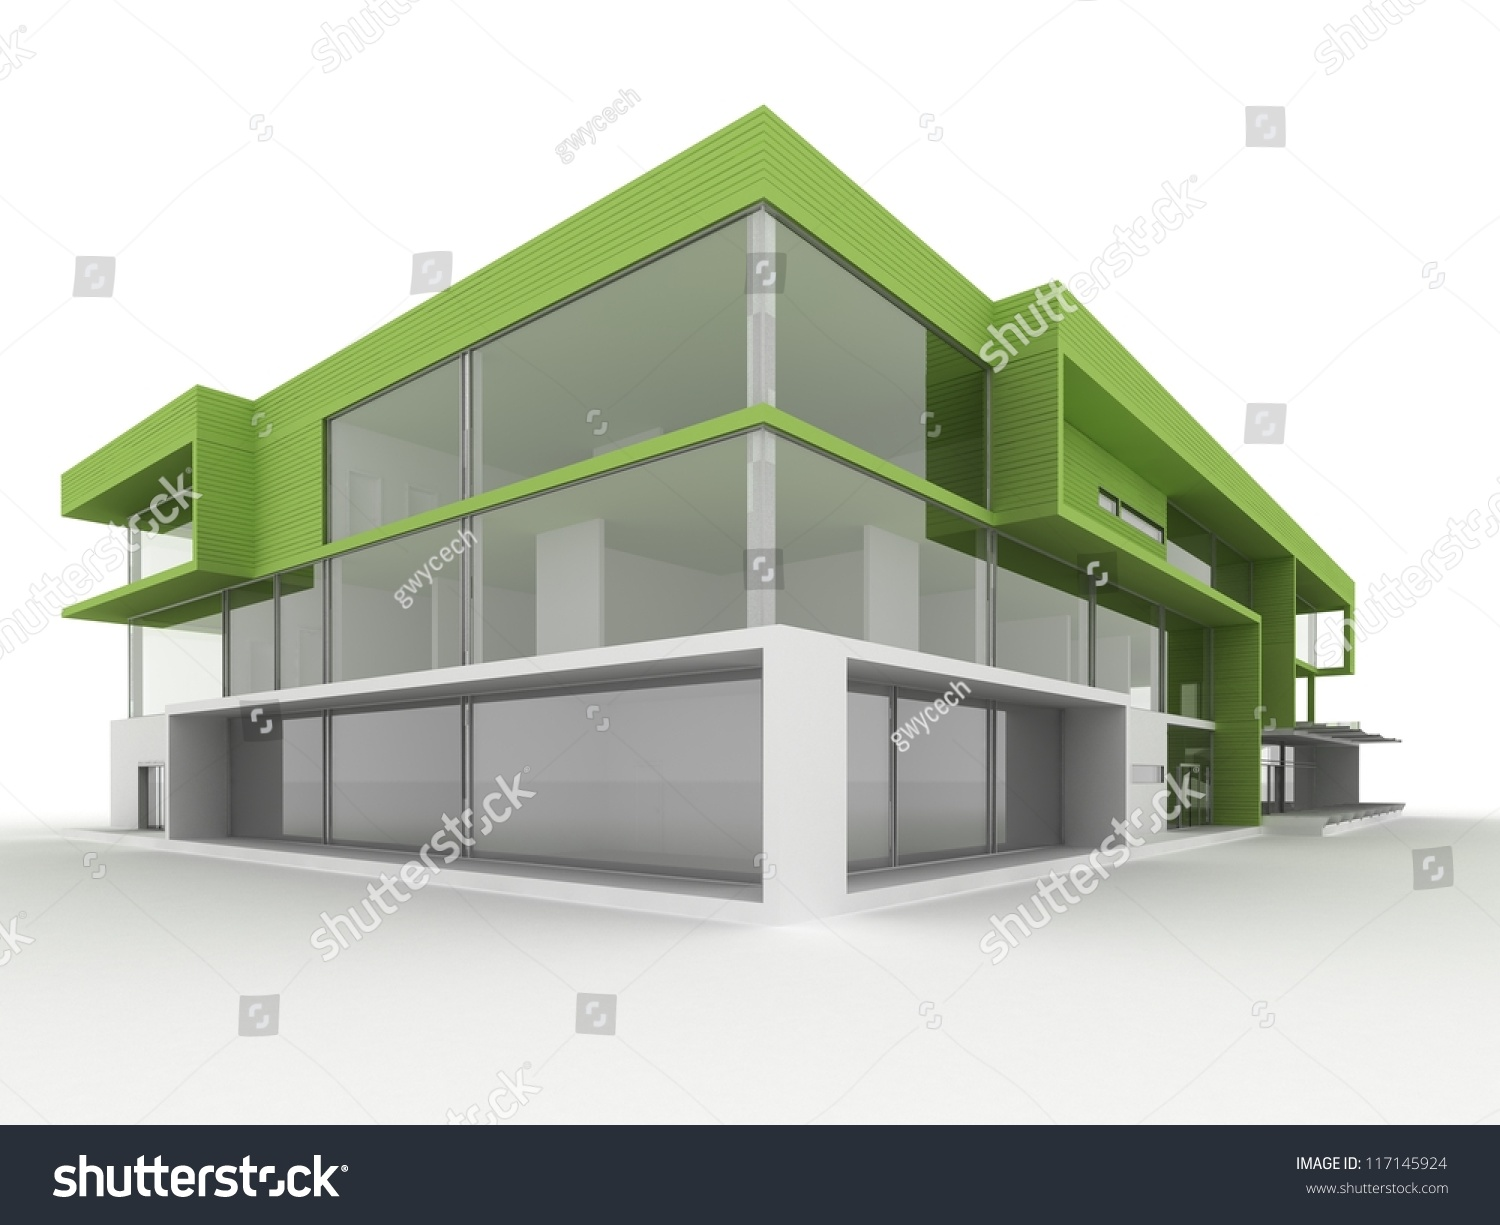 Design modern office building environmentally friendly for Modern and postmodern design of building